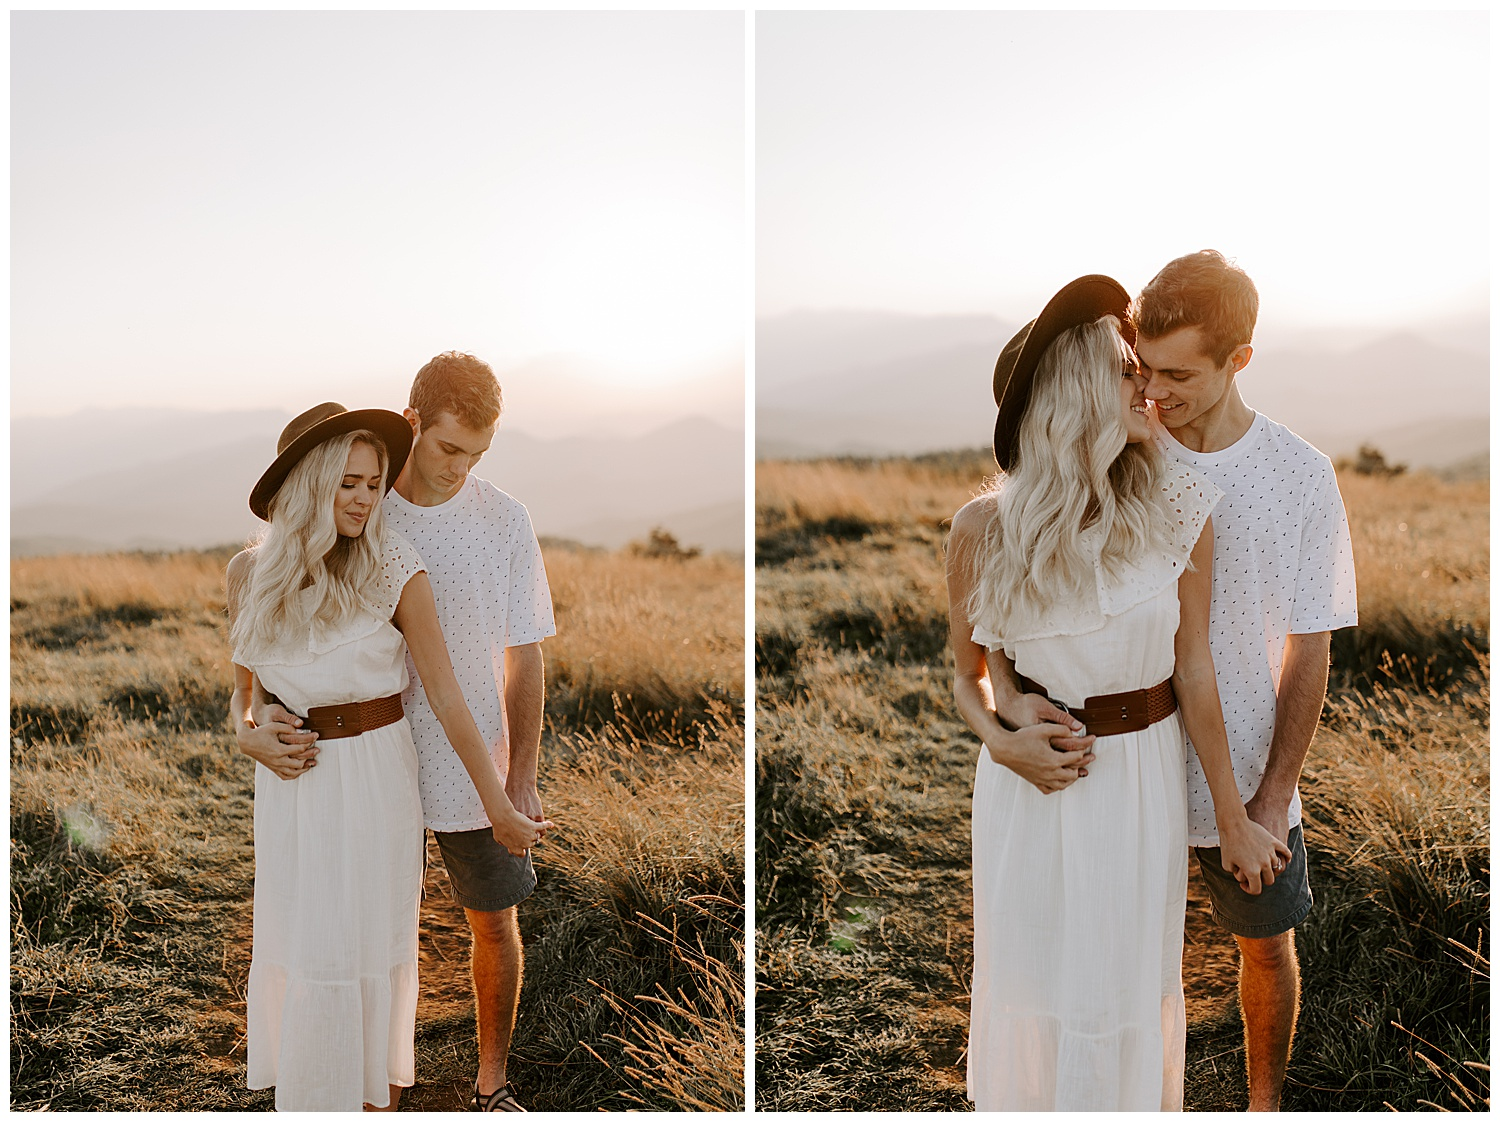 HANNAH_NICK_MAXPATCH_ENGAGEMENT2019-09-05_0014.jpg